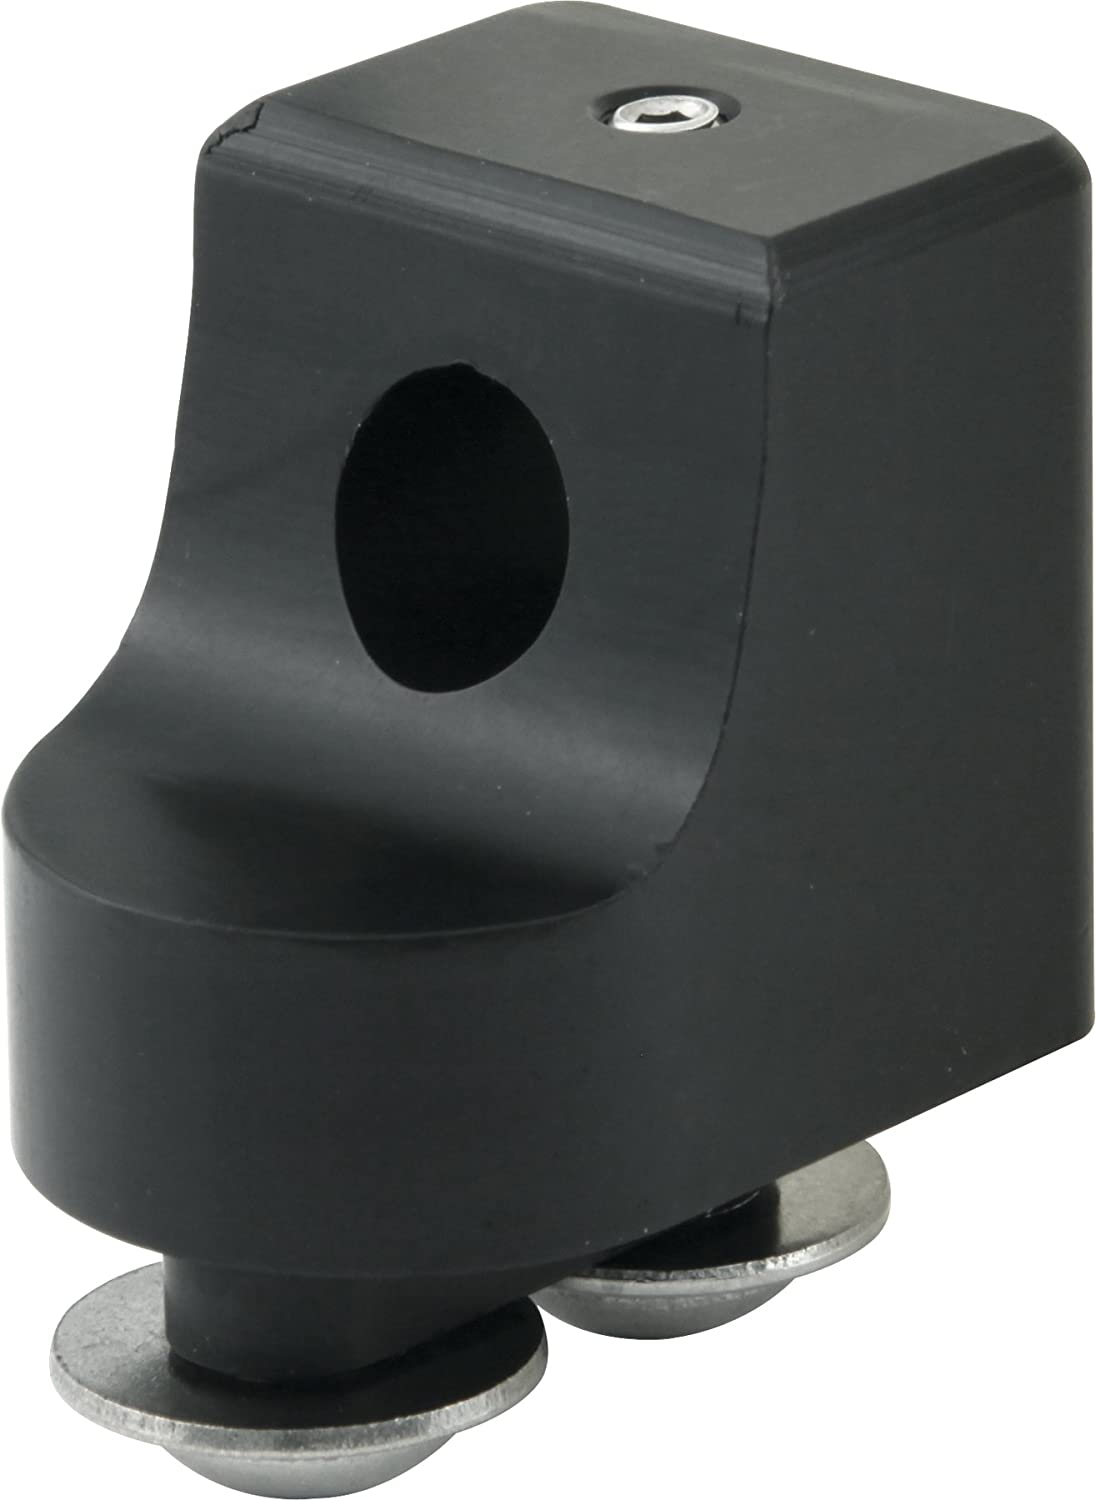 Allstar ALL54269 Black Anodized Throttle Bracket Replacement End for Morse Style Throttle Cable Allstar Performance